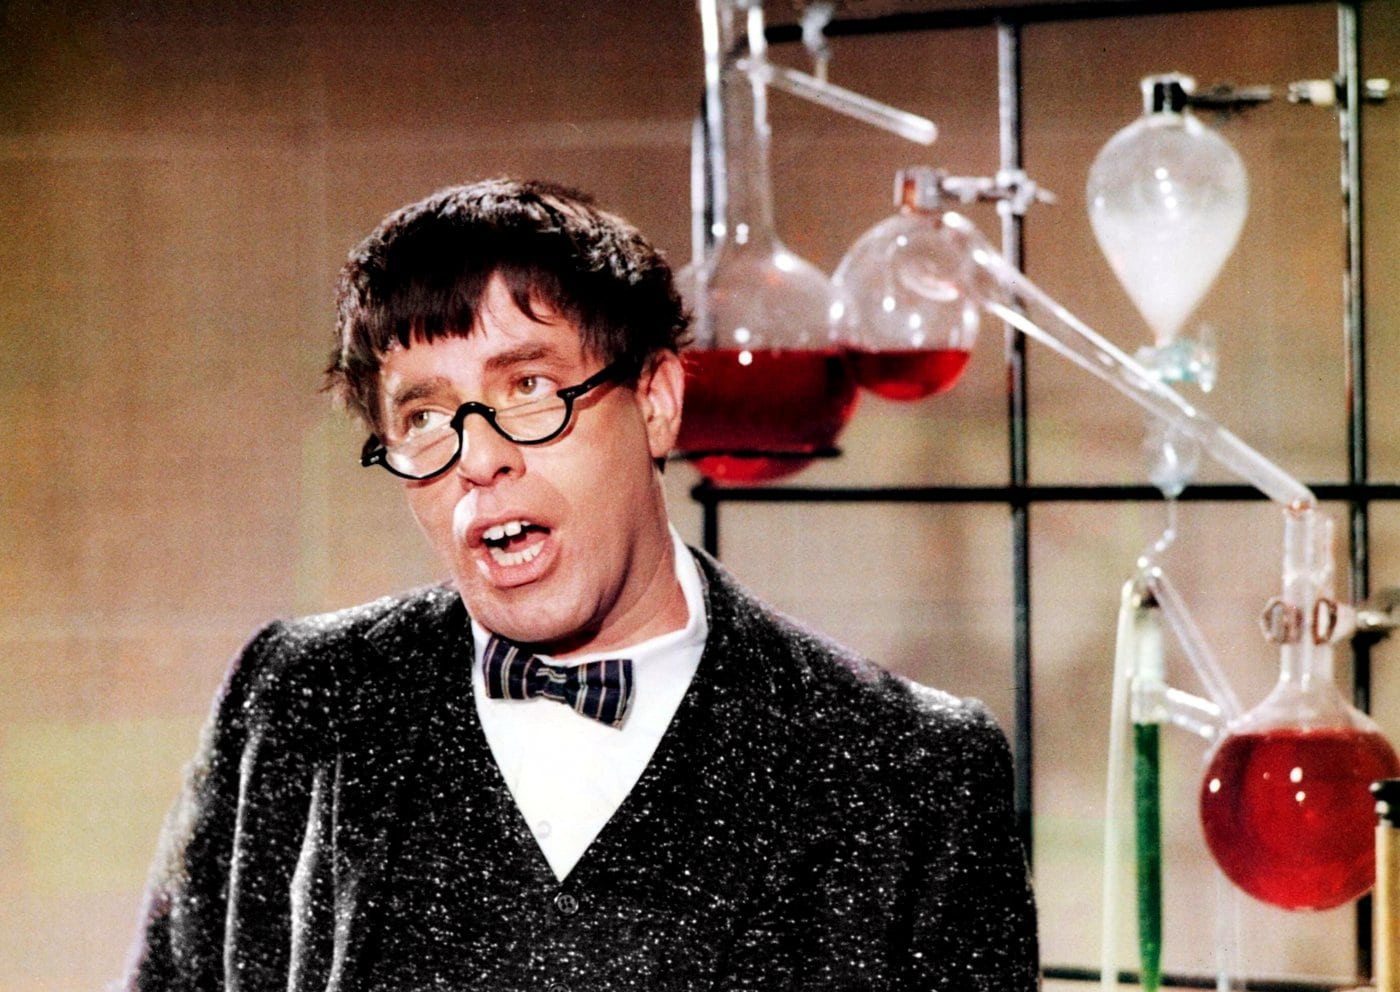 Vintage actor Jerry Lewis as The Nutty Professor (1960s movie)